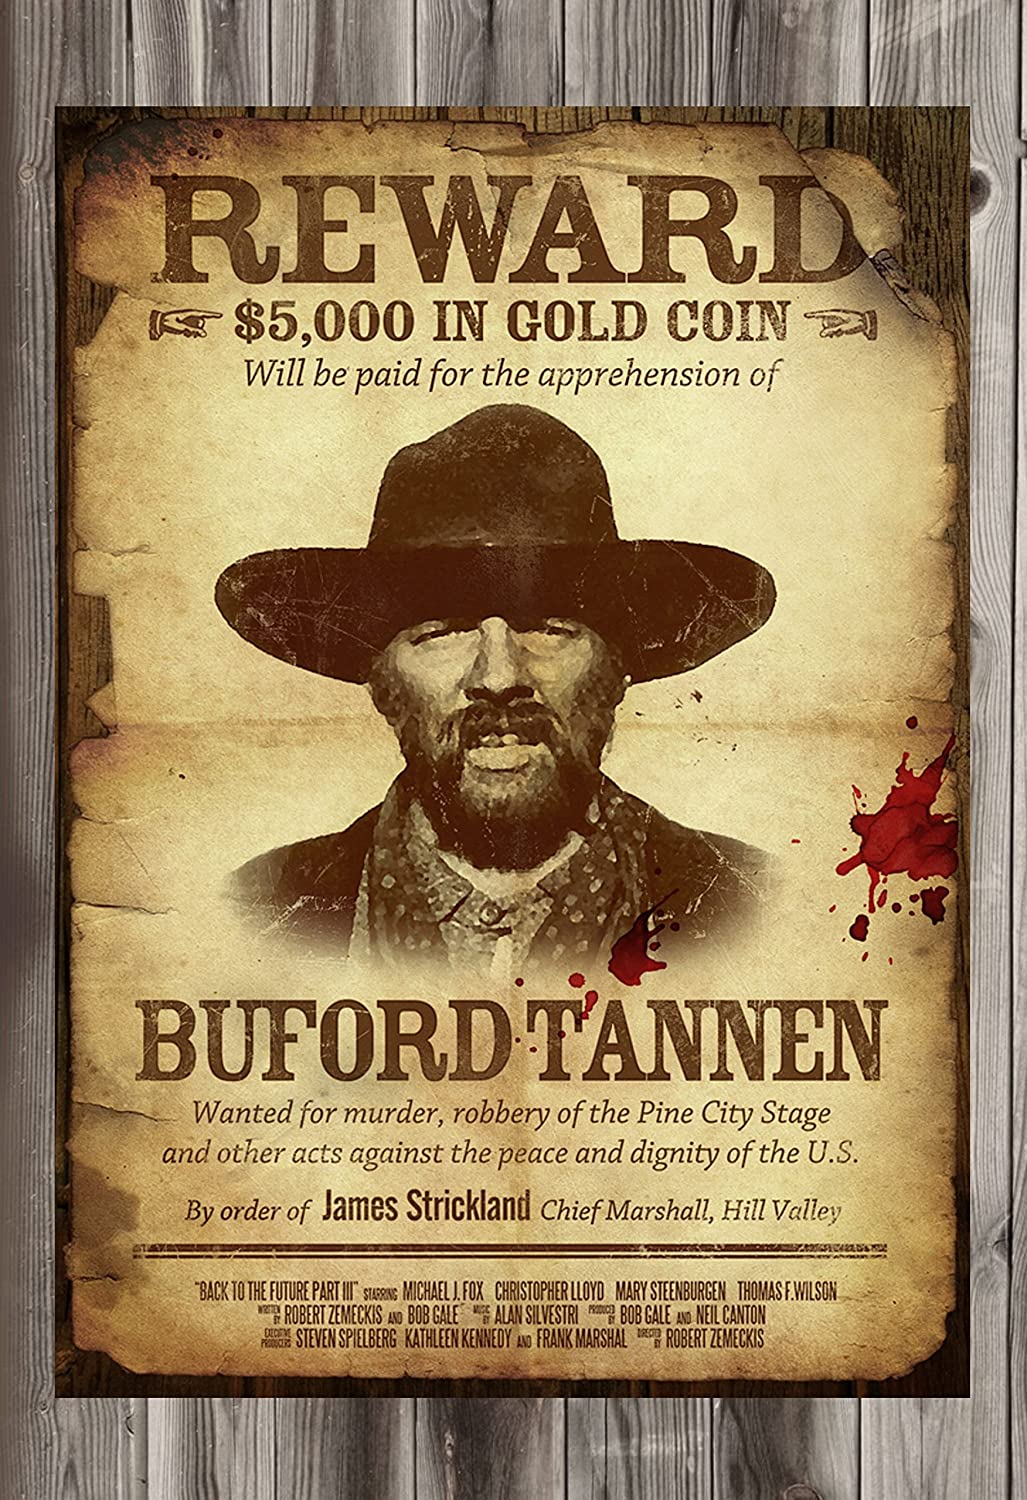 Amazon.com: Old Tin Sign Back To The Future Reward Wanted Buford ...